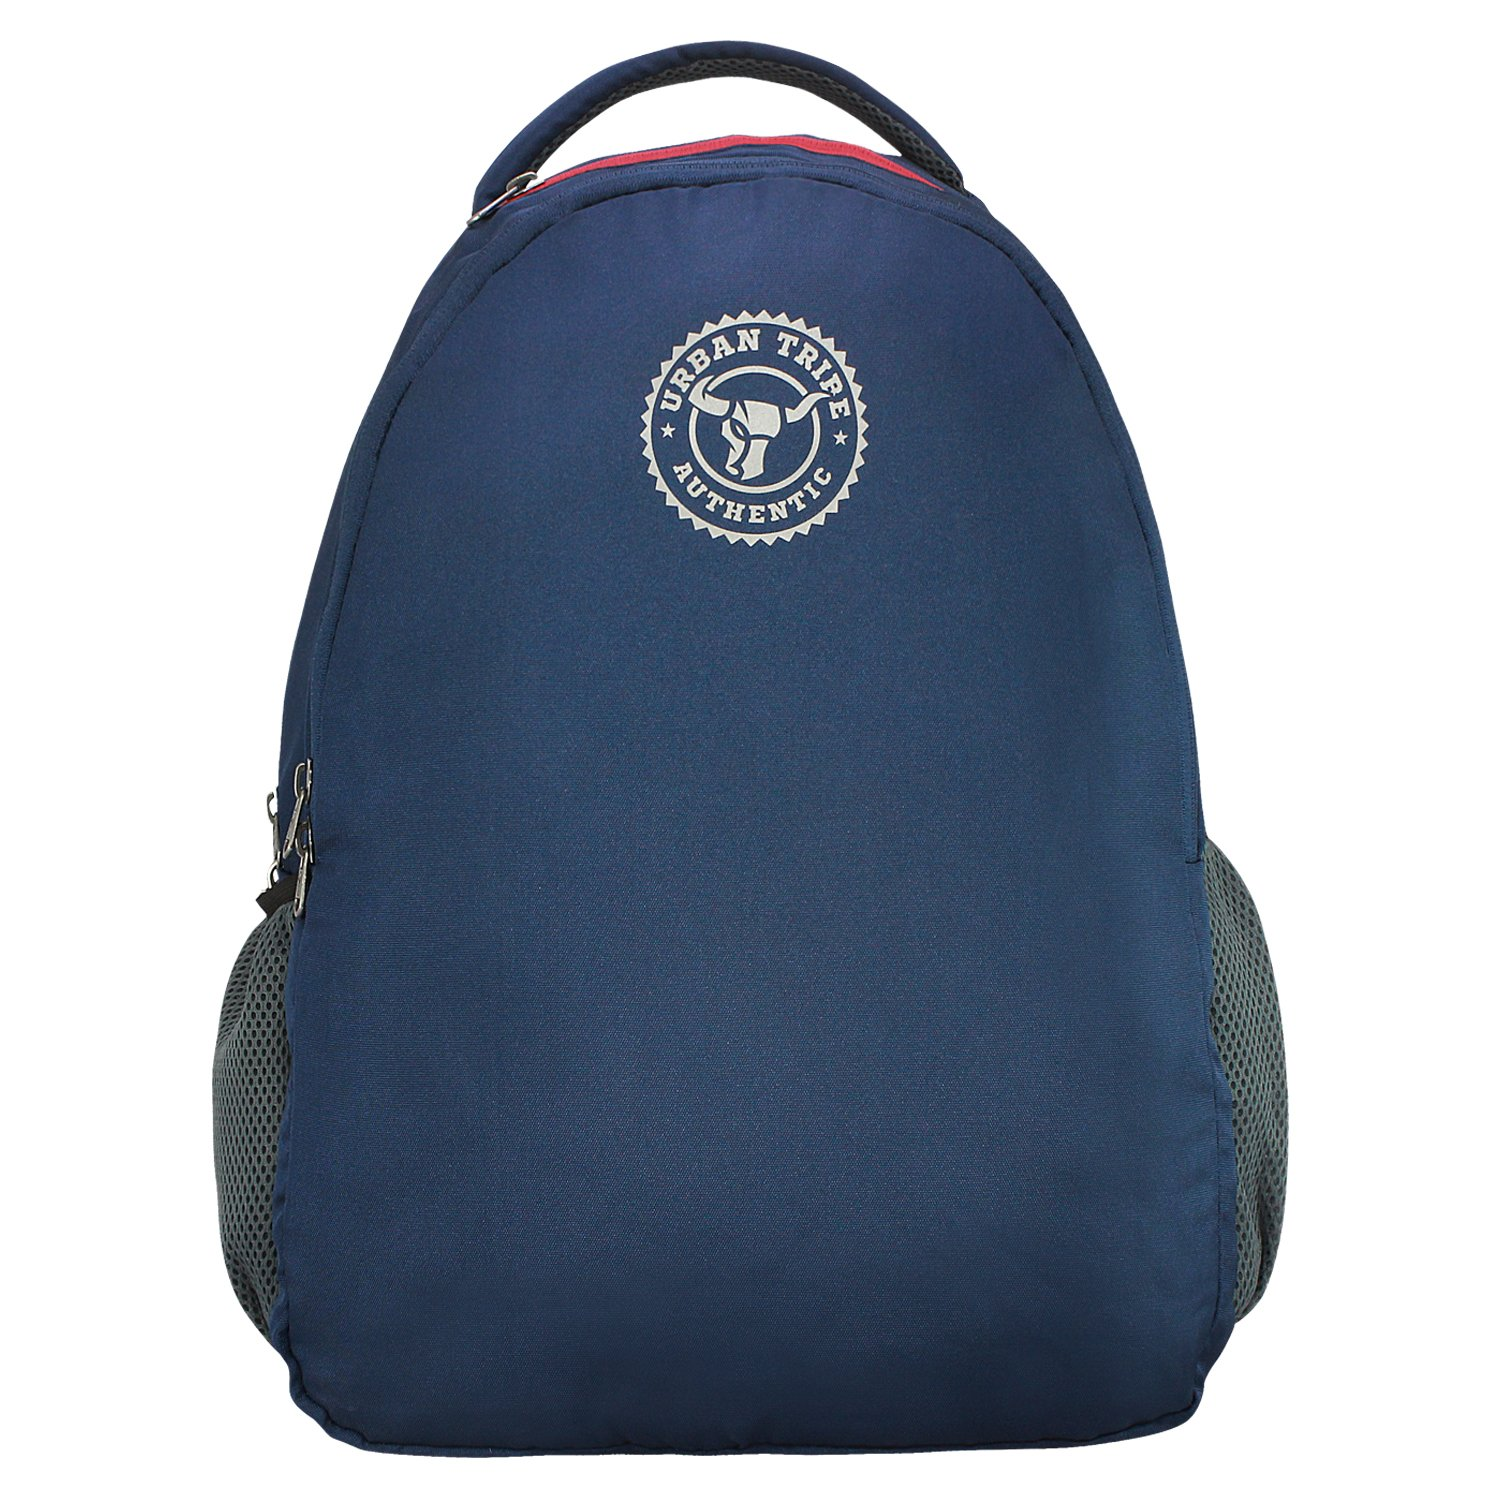 bfe7fa7b1a Roadster Navy Blue Laptop Backpack with - > CHEST STRAP